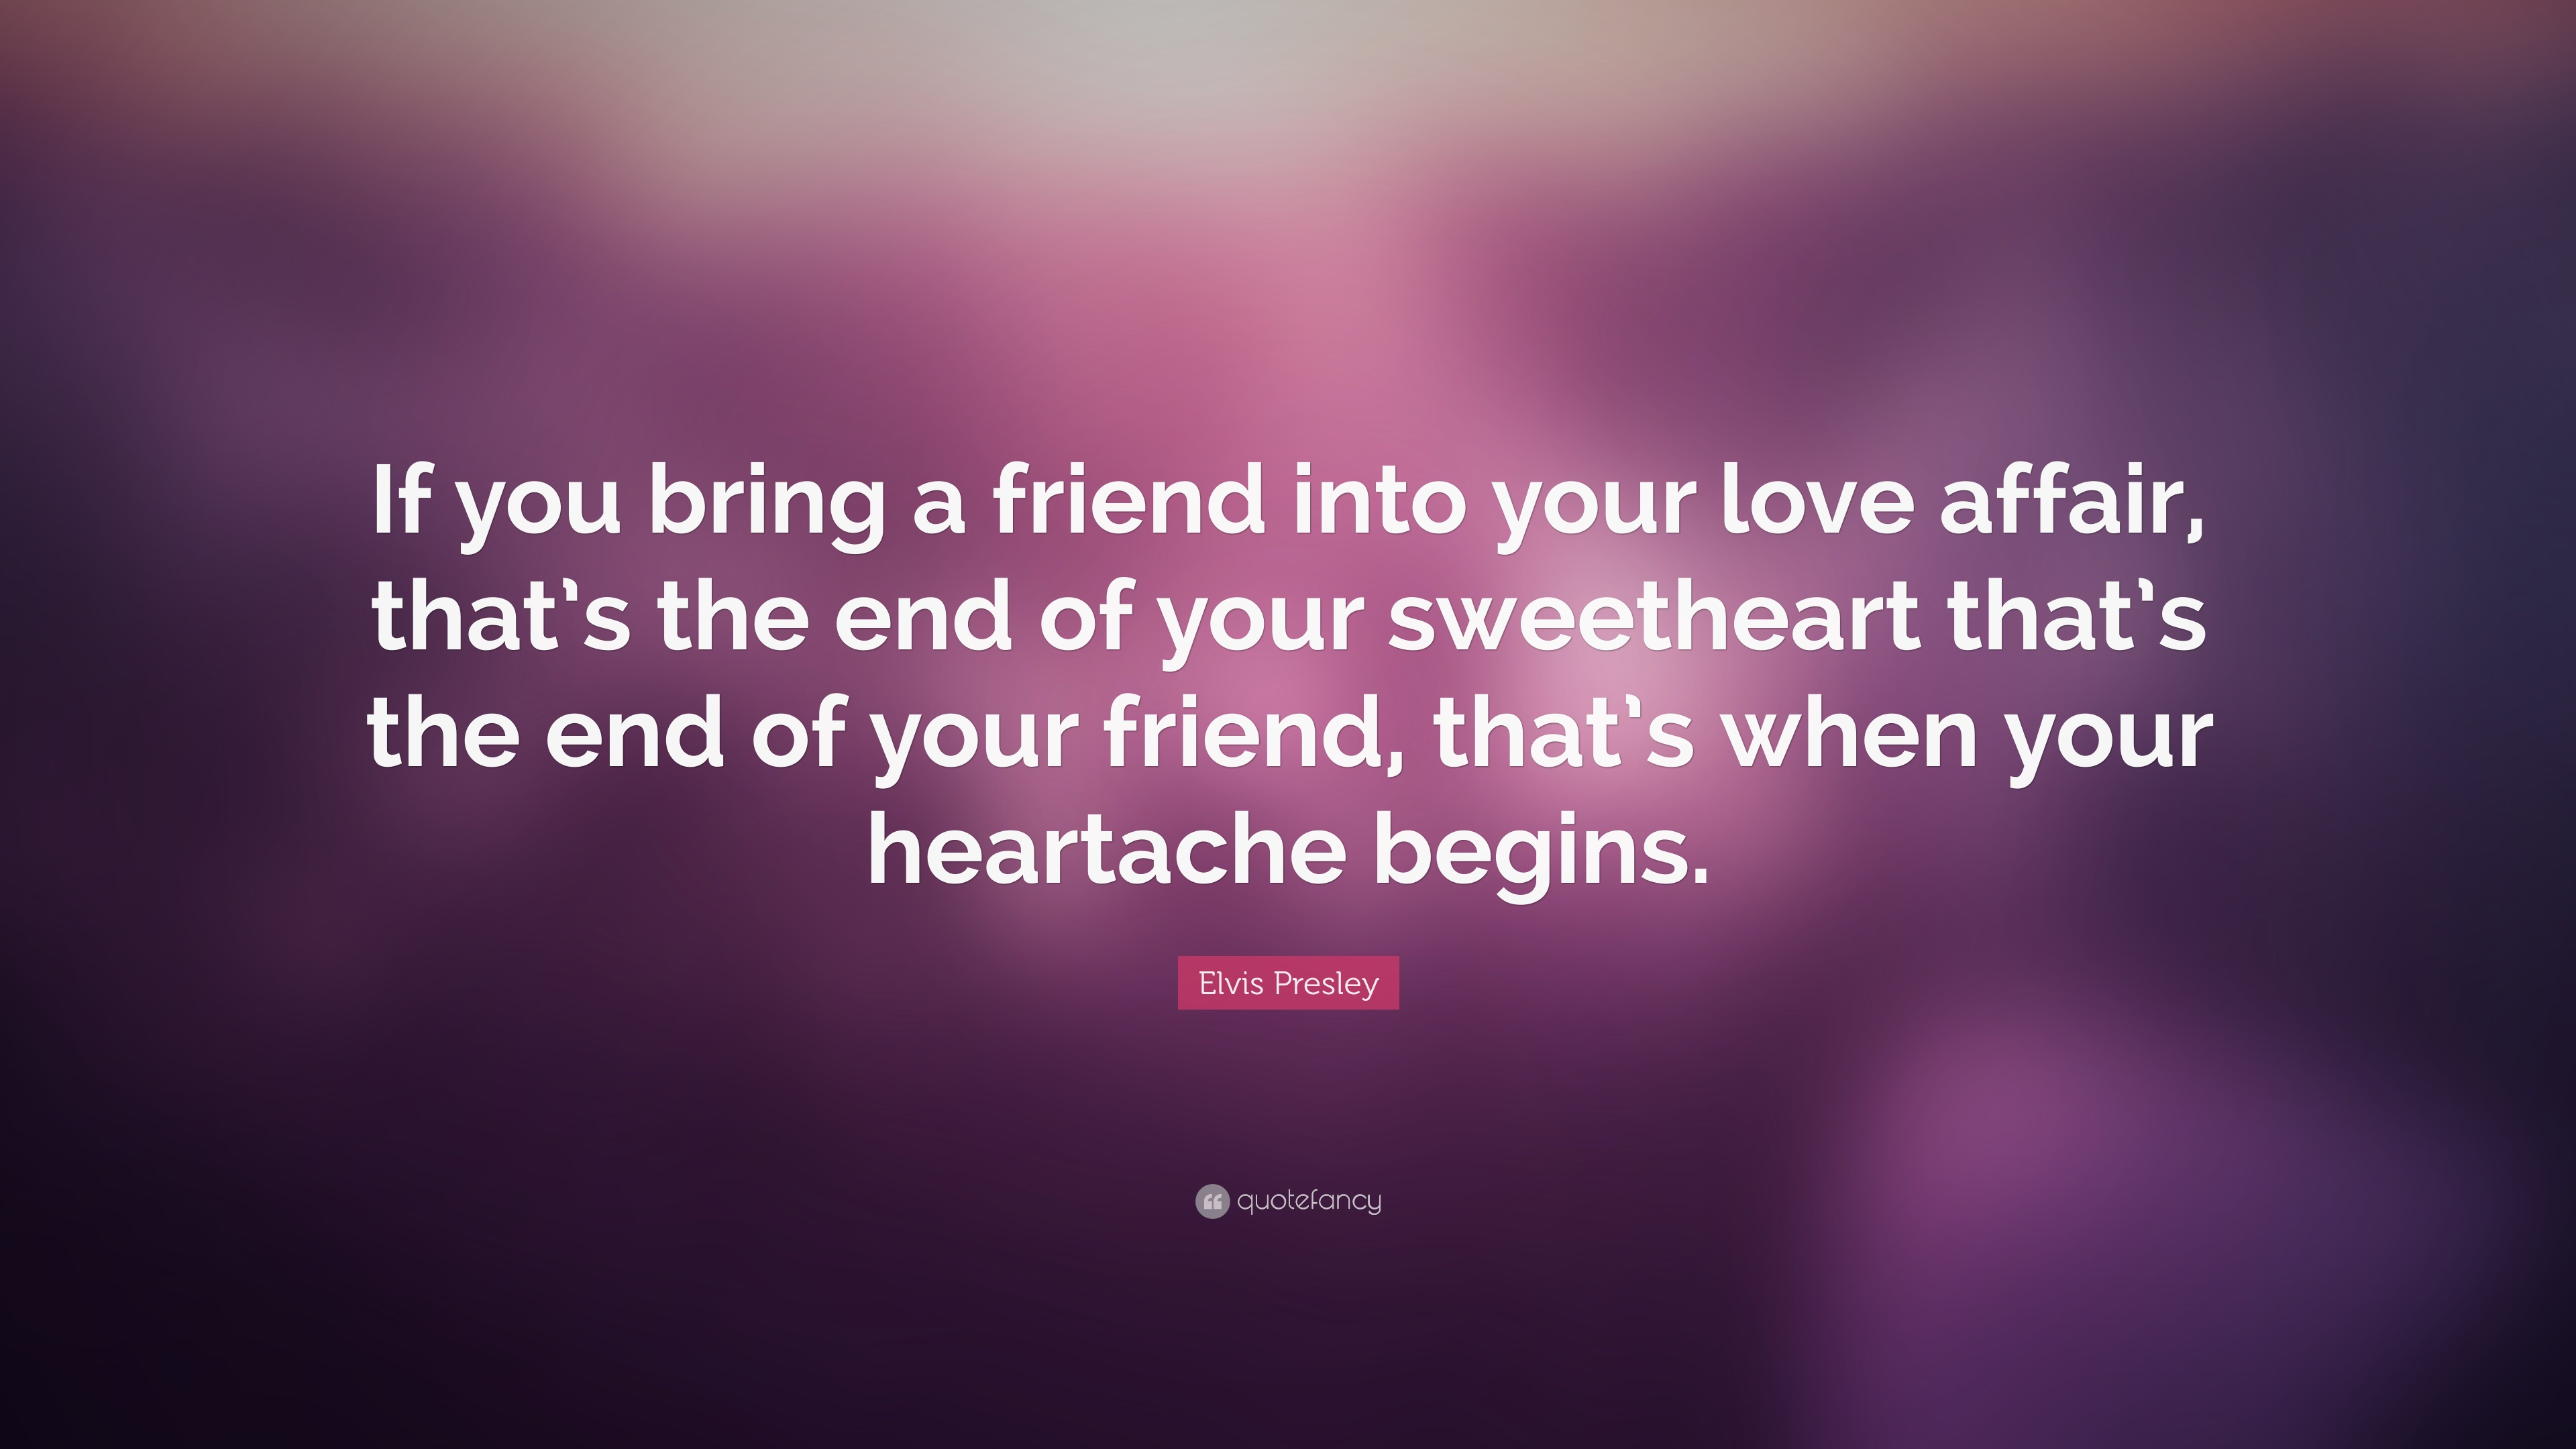 What if you love a friend